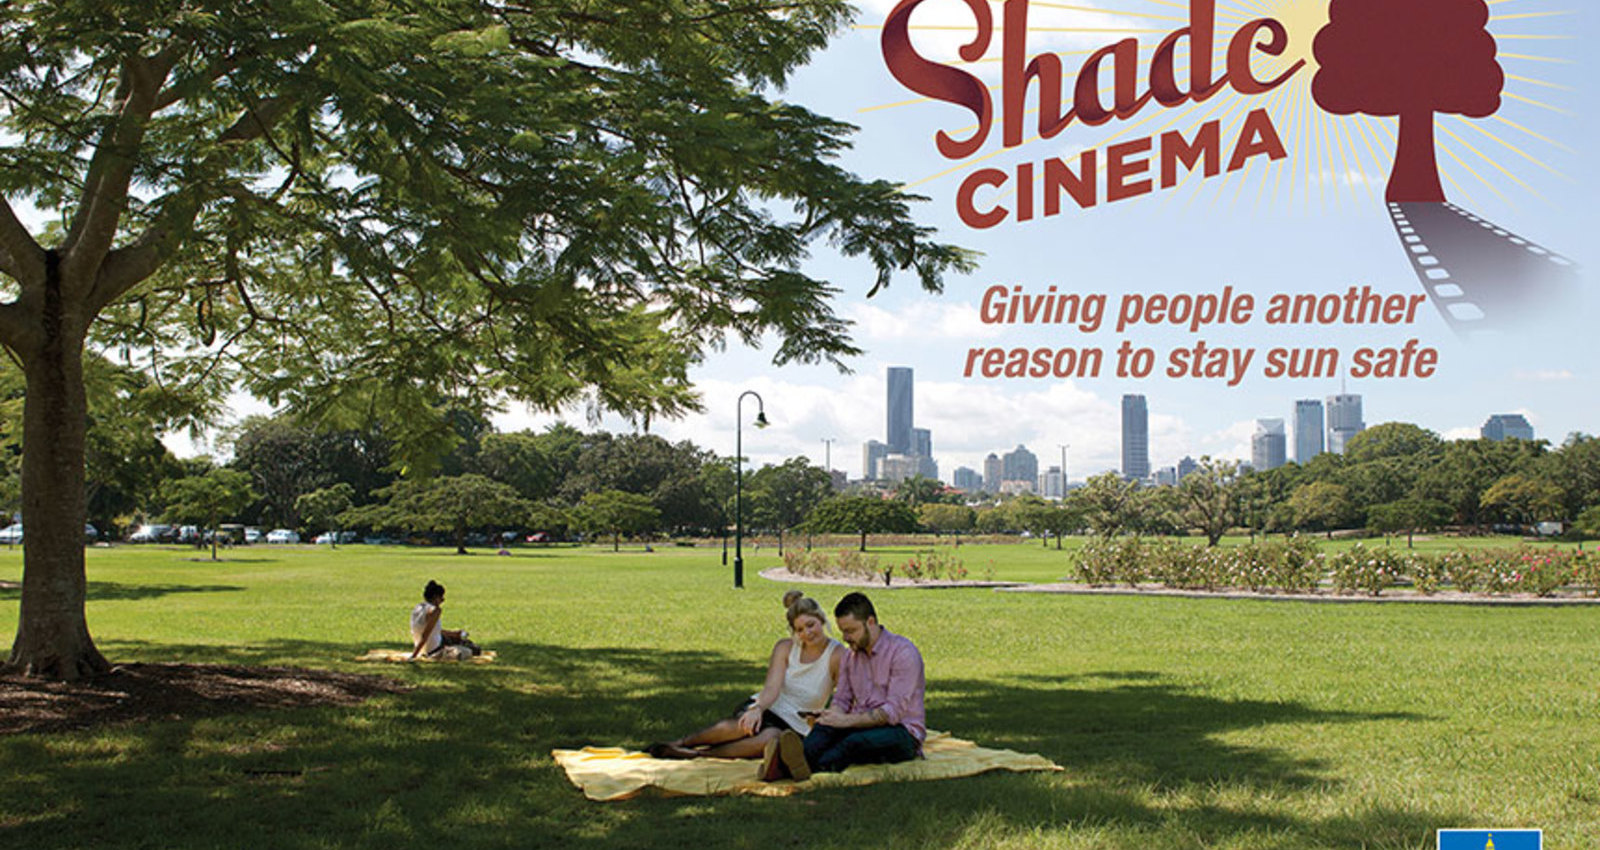 Shade Cinema